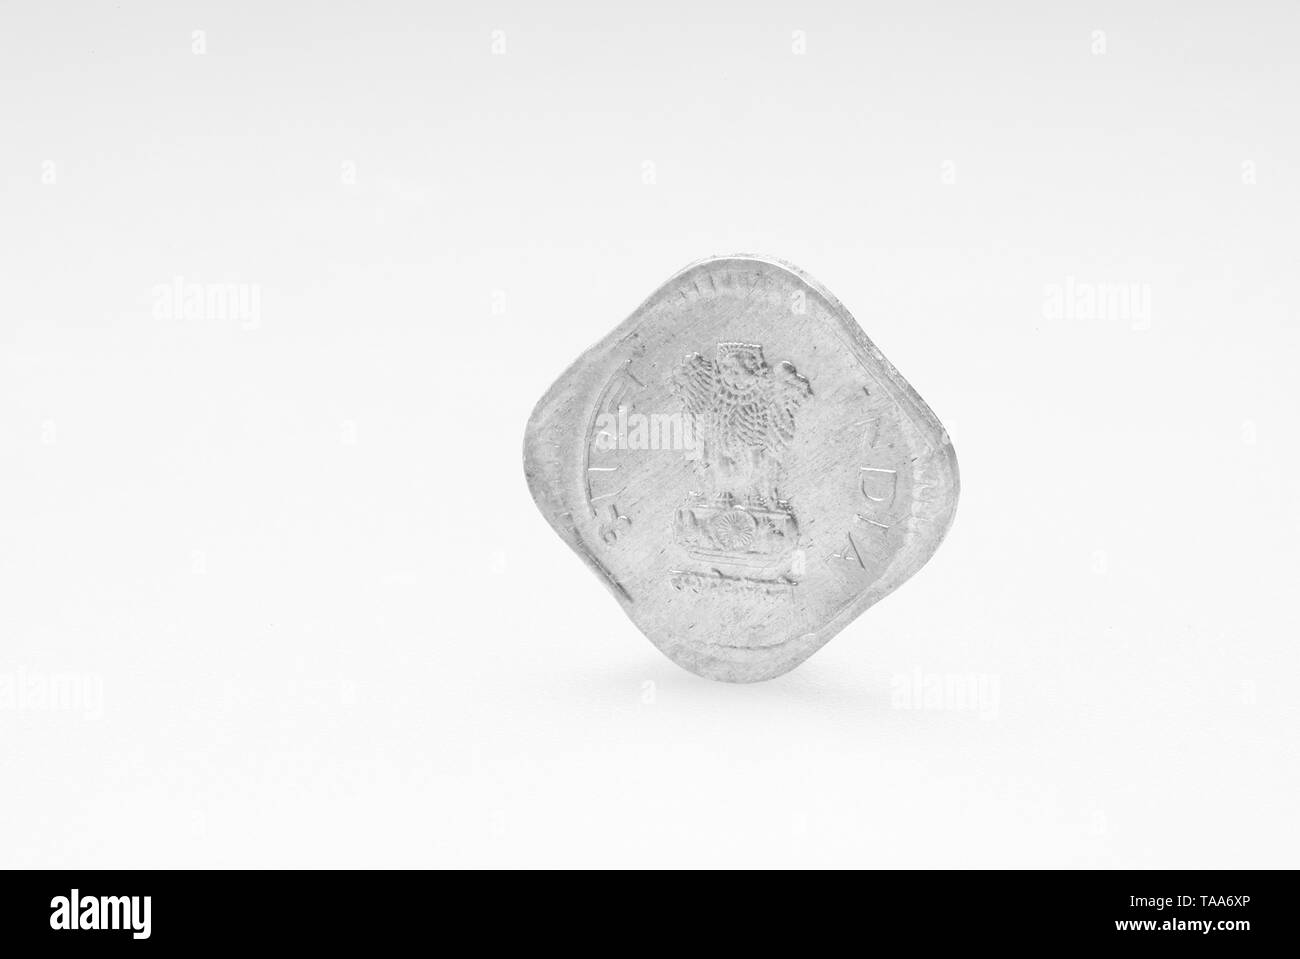 five paisa coin on white background, India, Asia, 1990 - Stock Image